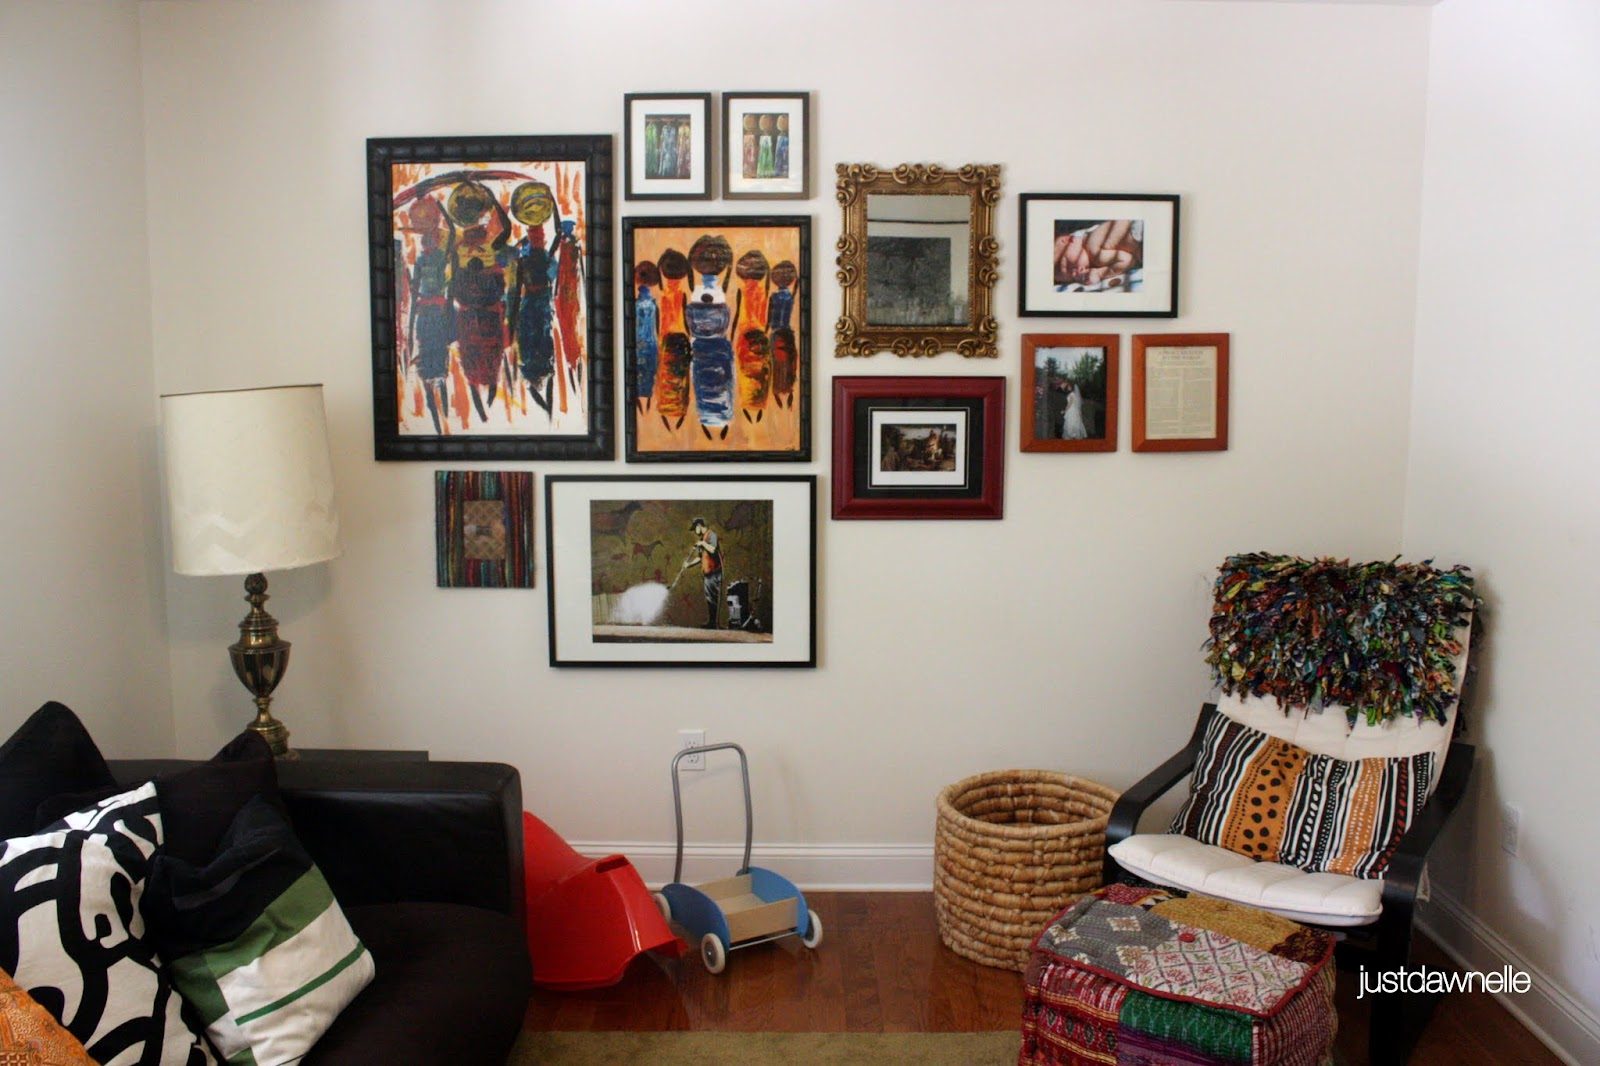 17 artistic wall collage ideas living room extended homes 20339 - Wall collage ideas living room ...